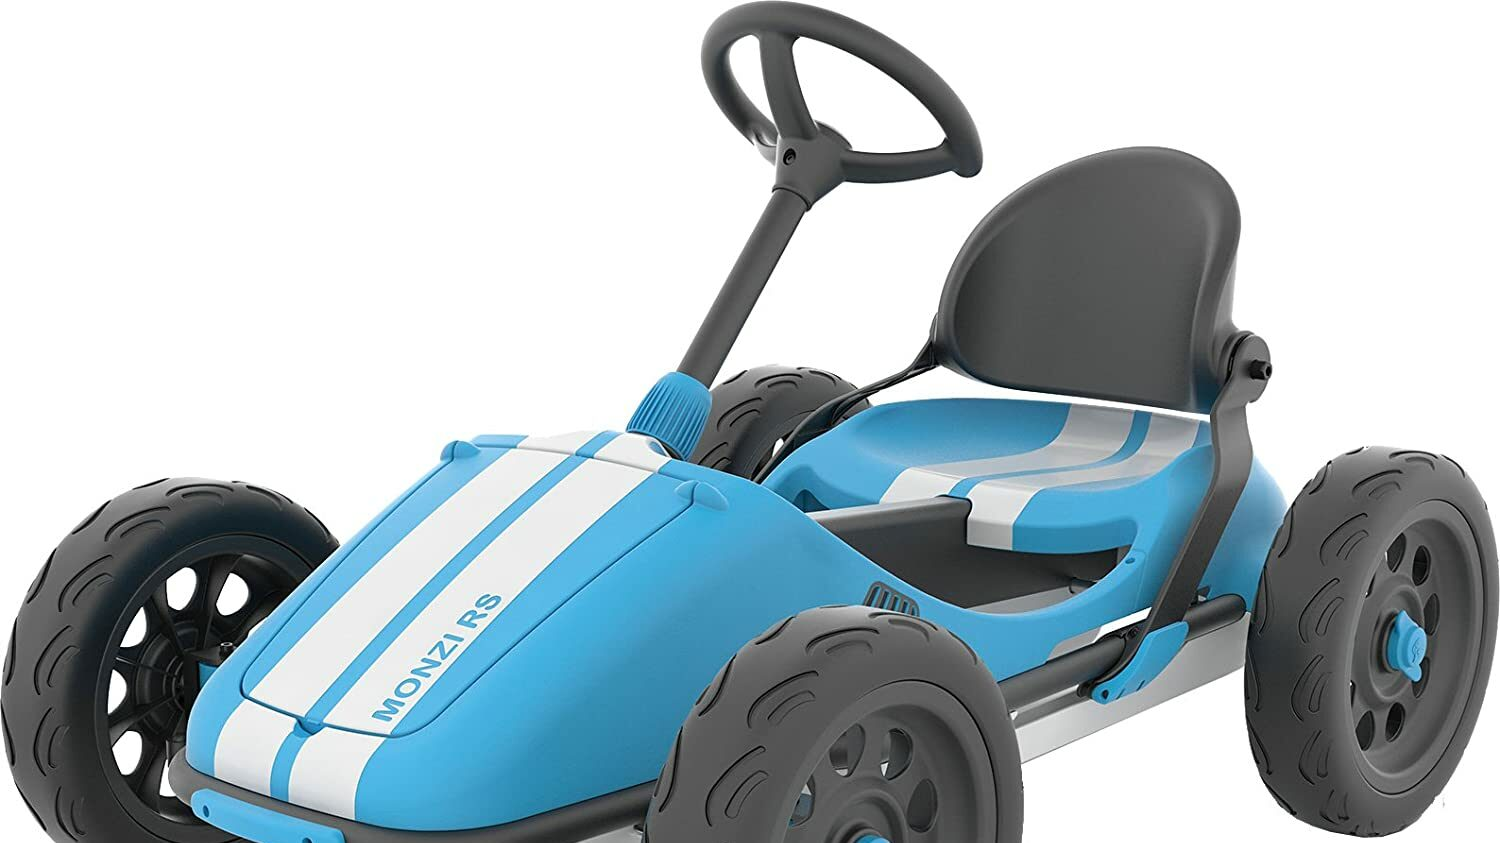 The Best Go Karts for Kids (Review) in 2021